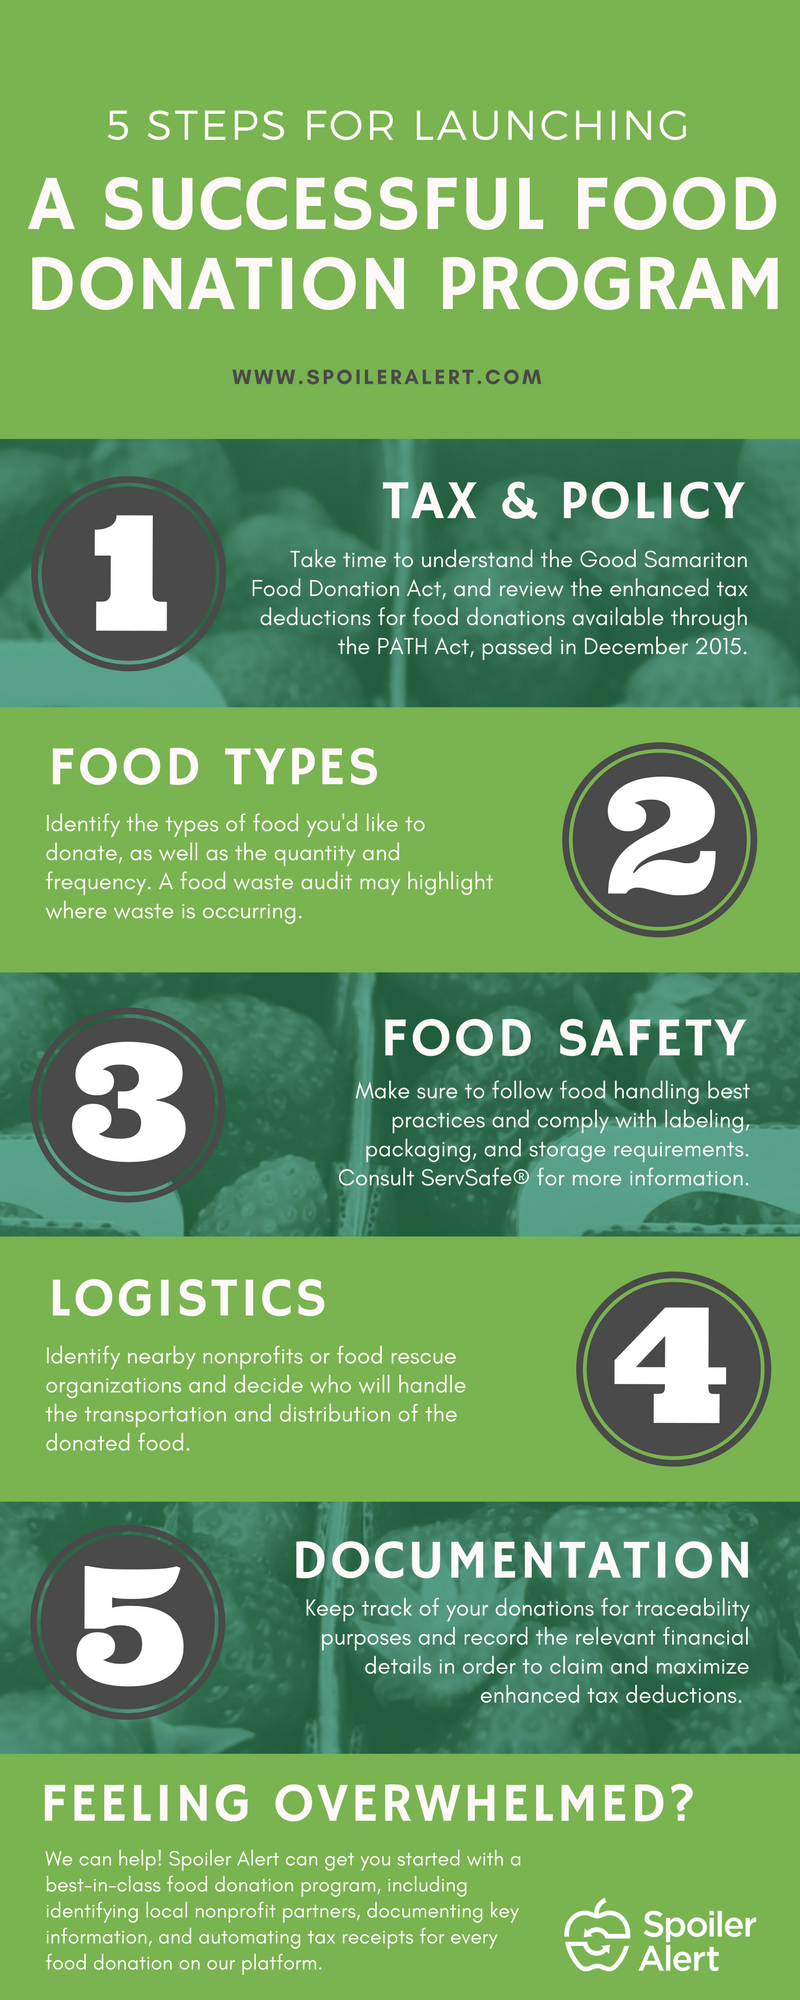 5 Steps for Launching a Successful Food Donation Program.png